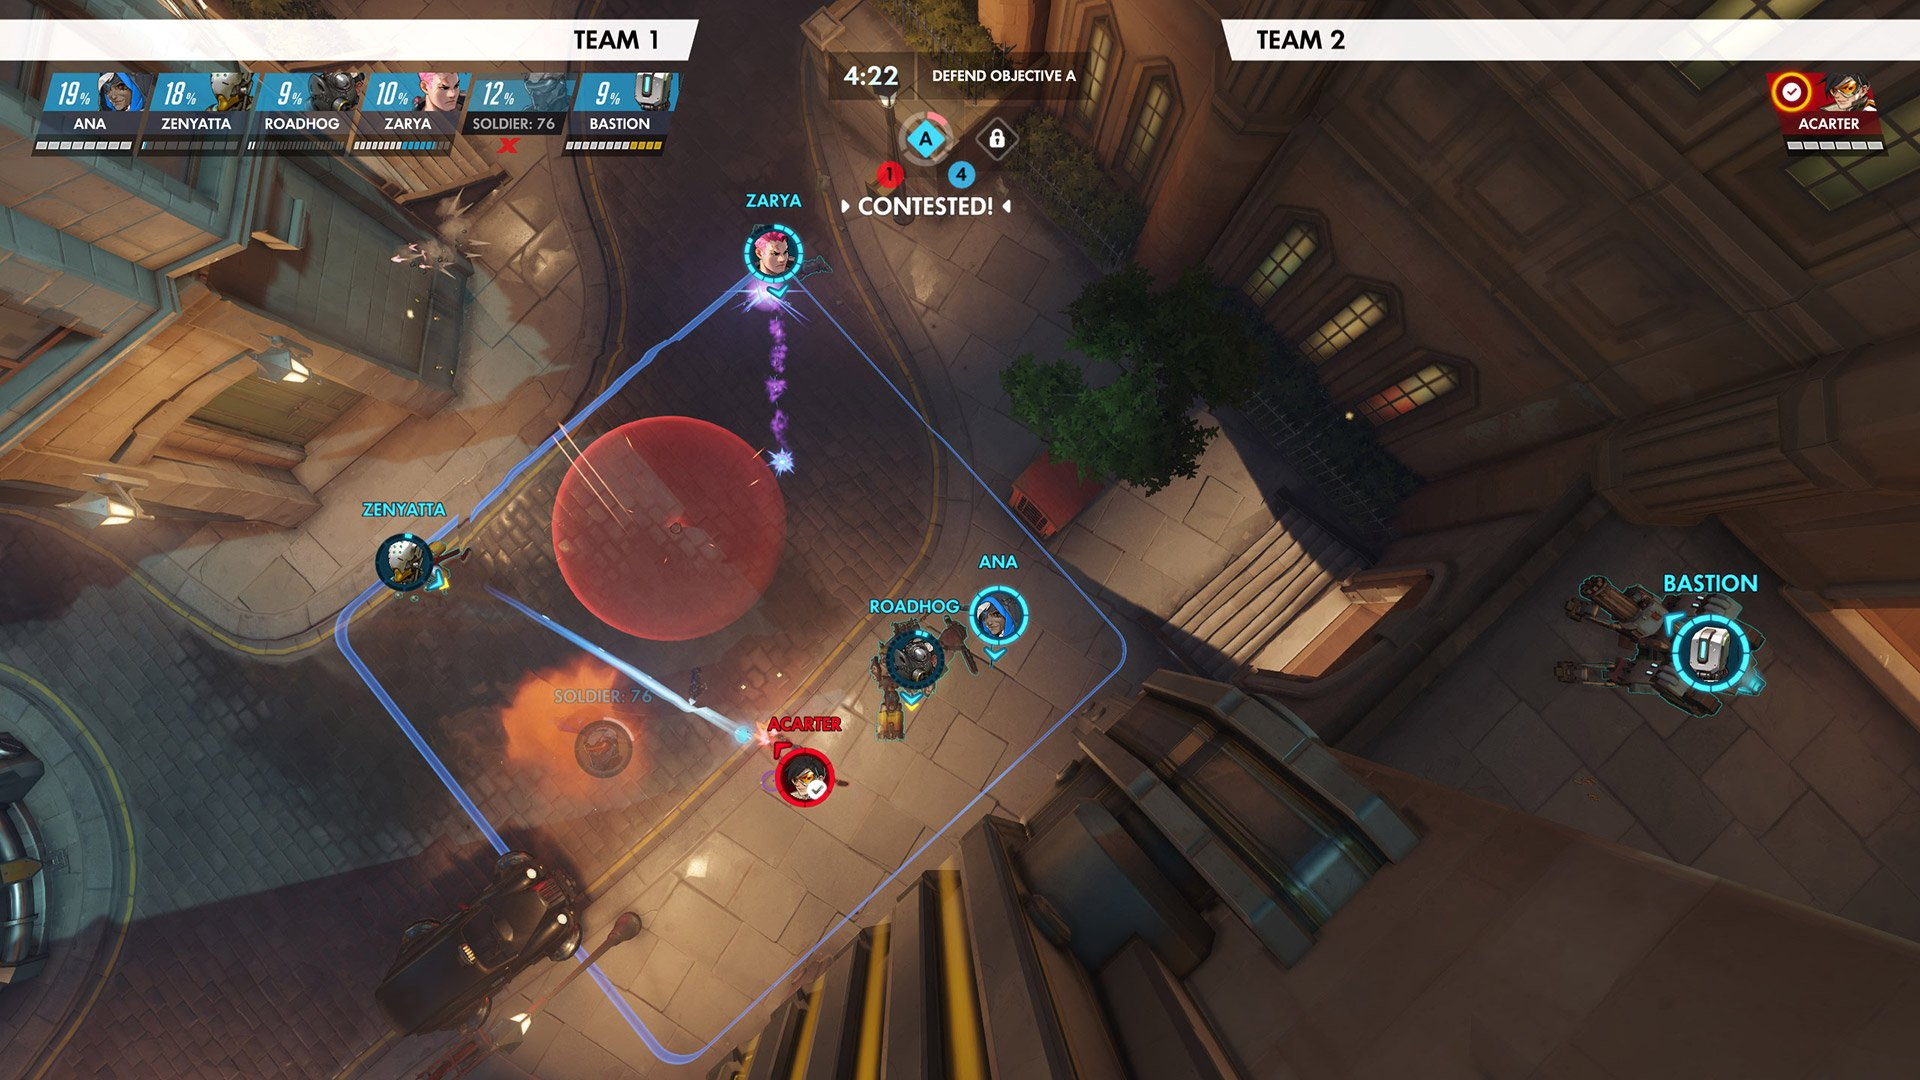 You can watch Overwatch replays at a glance